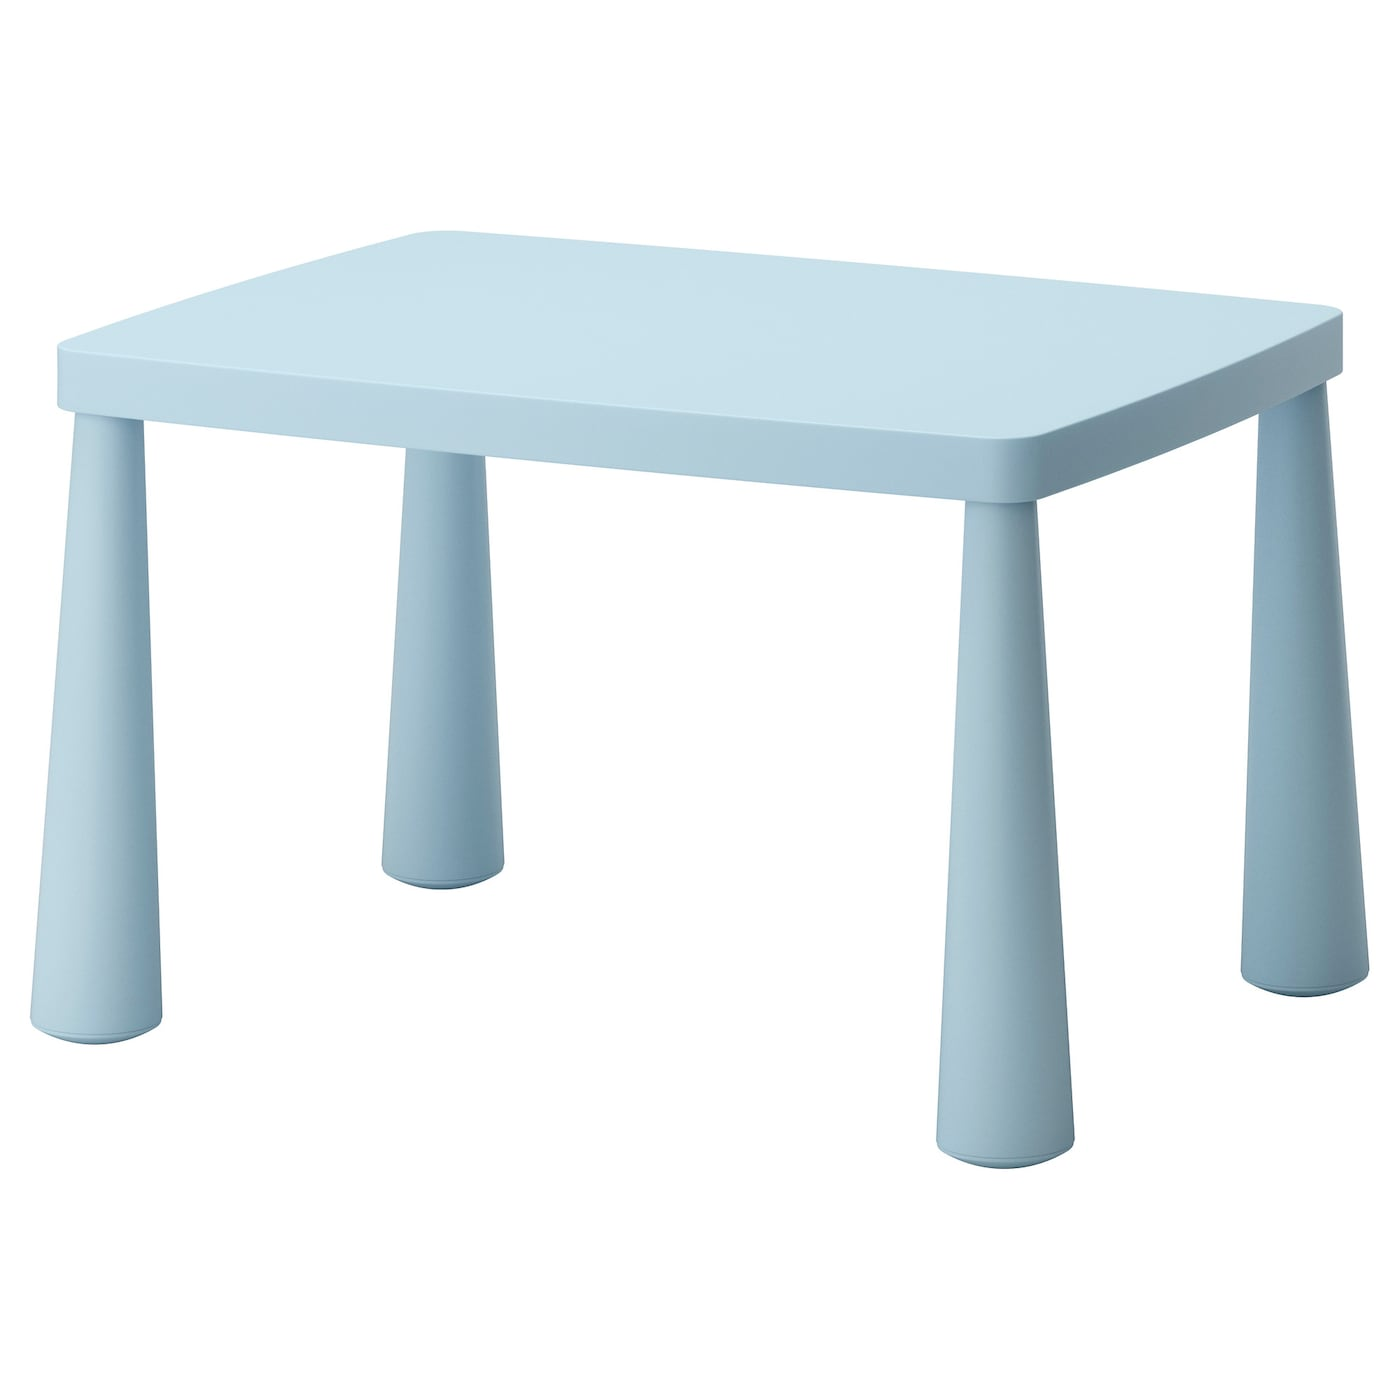 Mammut children 39 s table in outdoor light blue 77x55 cm ikea for Kid sized furniture